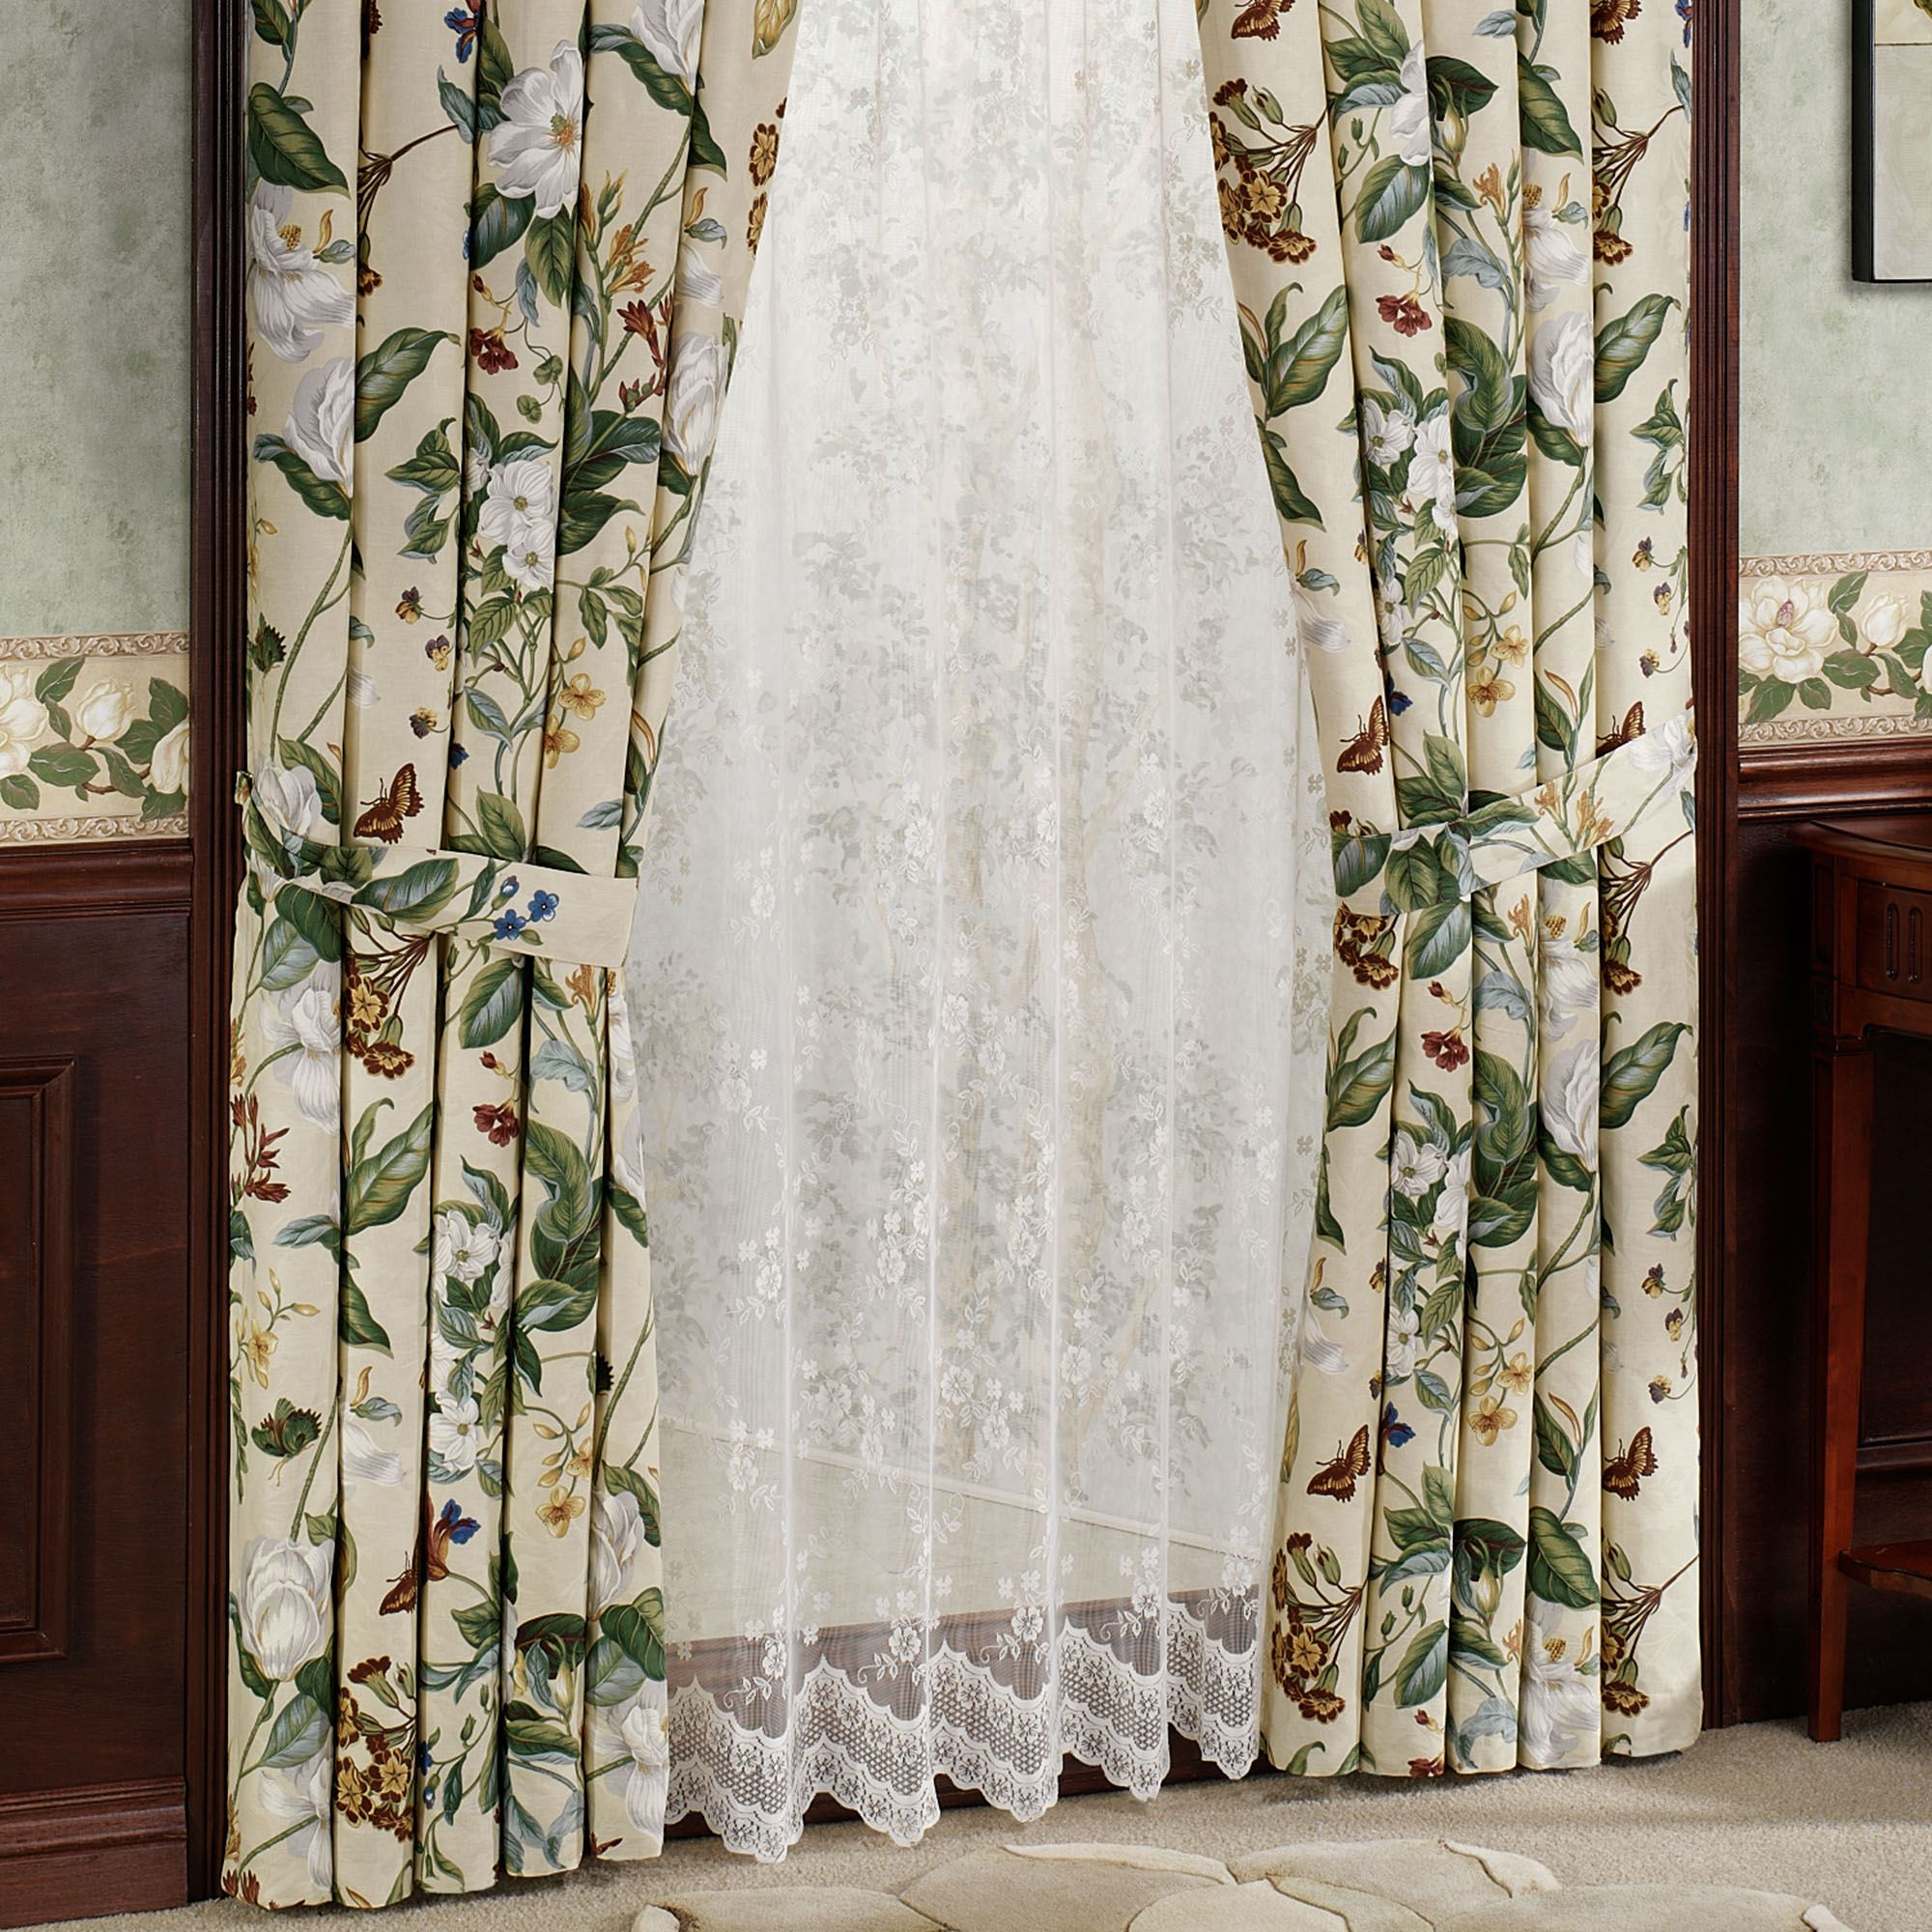 cotton valance whiteains size valances with full of attached image concept white shower sheer lined magnificent and black curtain curtains